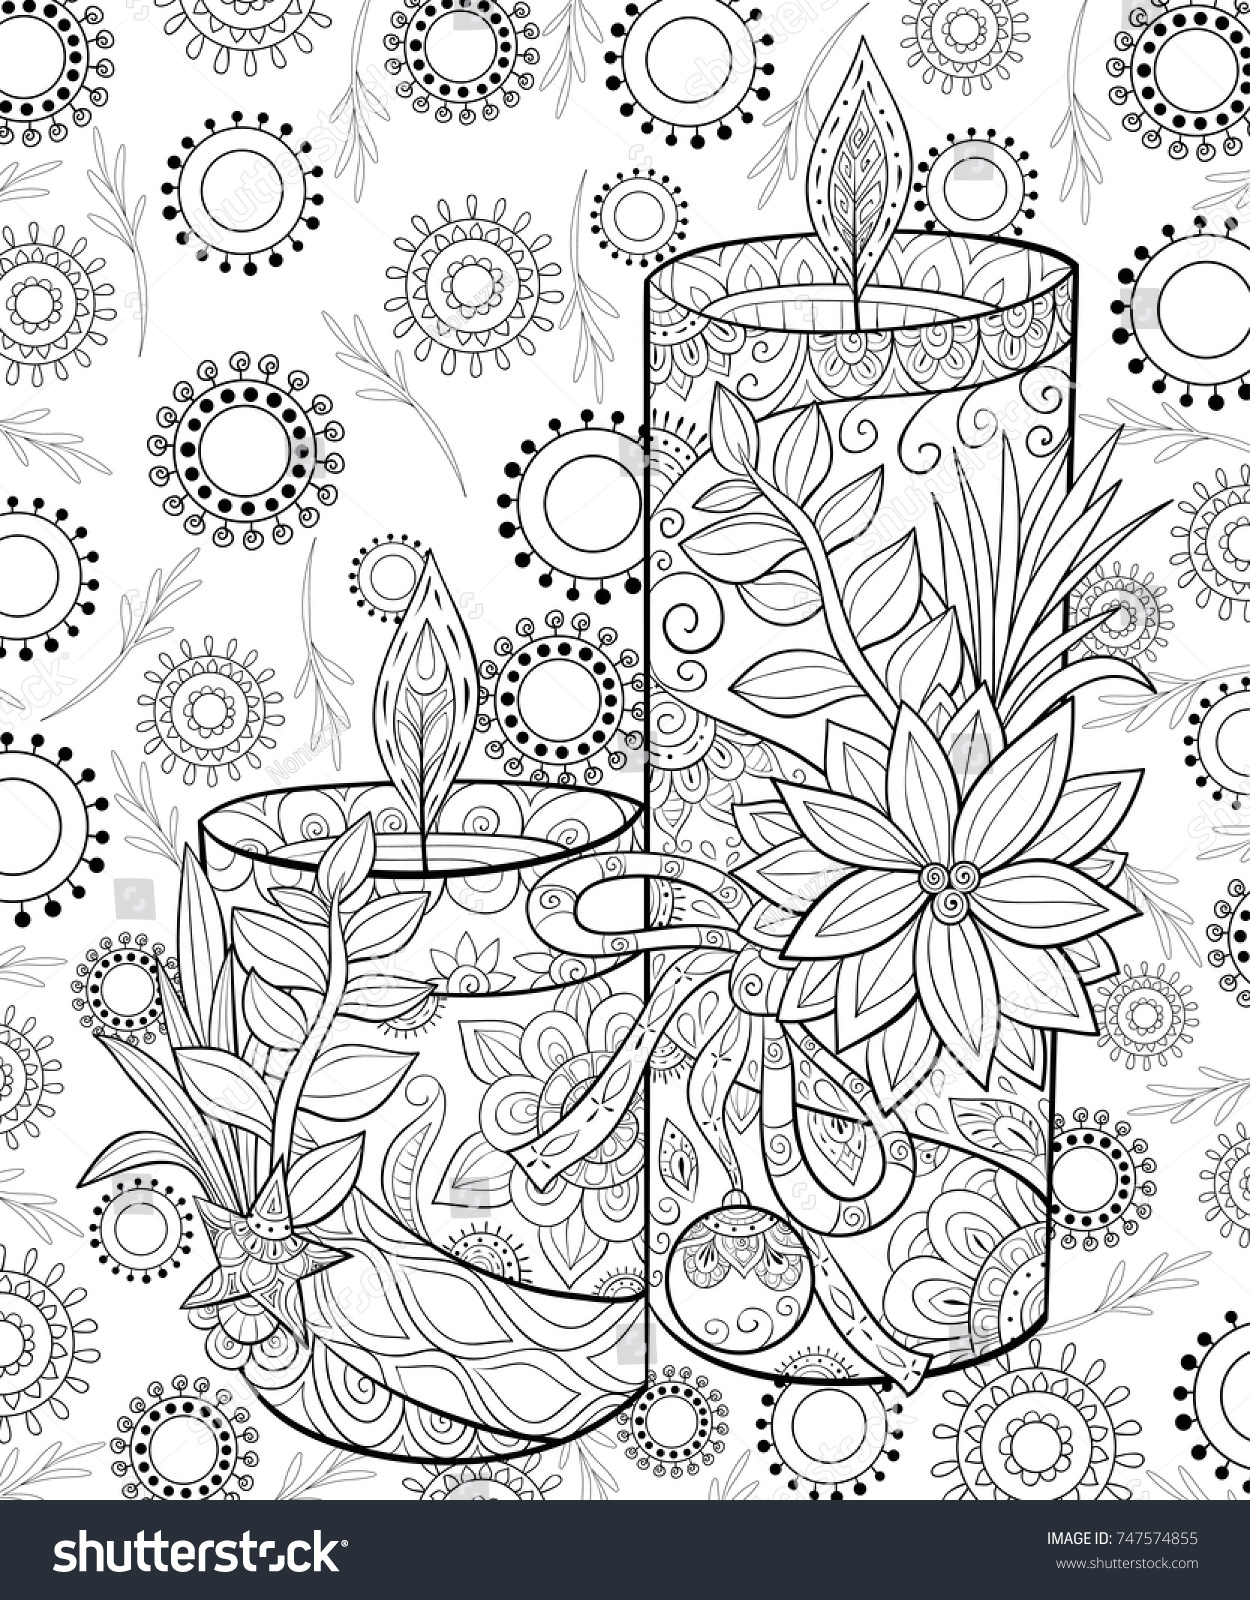 Adult Coloring Pagebook The Christmas Candles With Flower And Decoration Ball Background